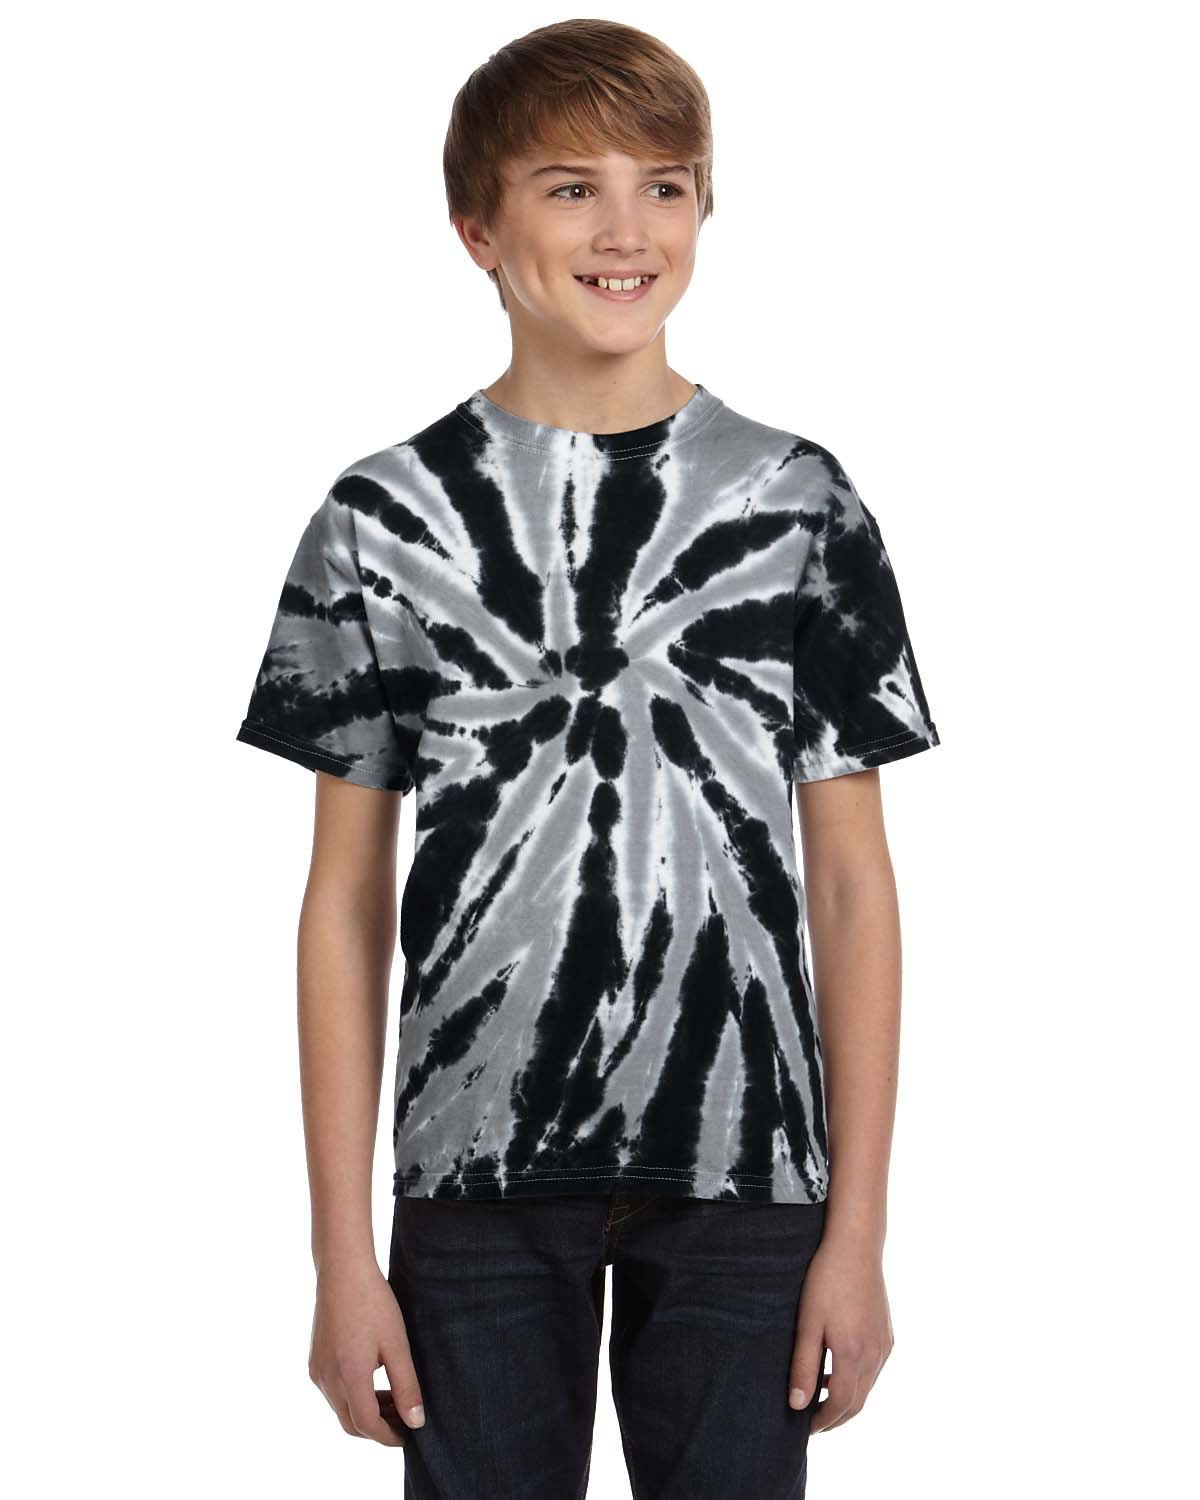 Youth 5.4 oz. 100% Cotton Twist Tie-Dyed T-Shirt